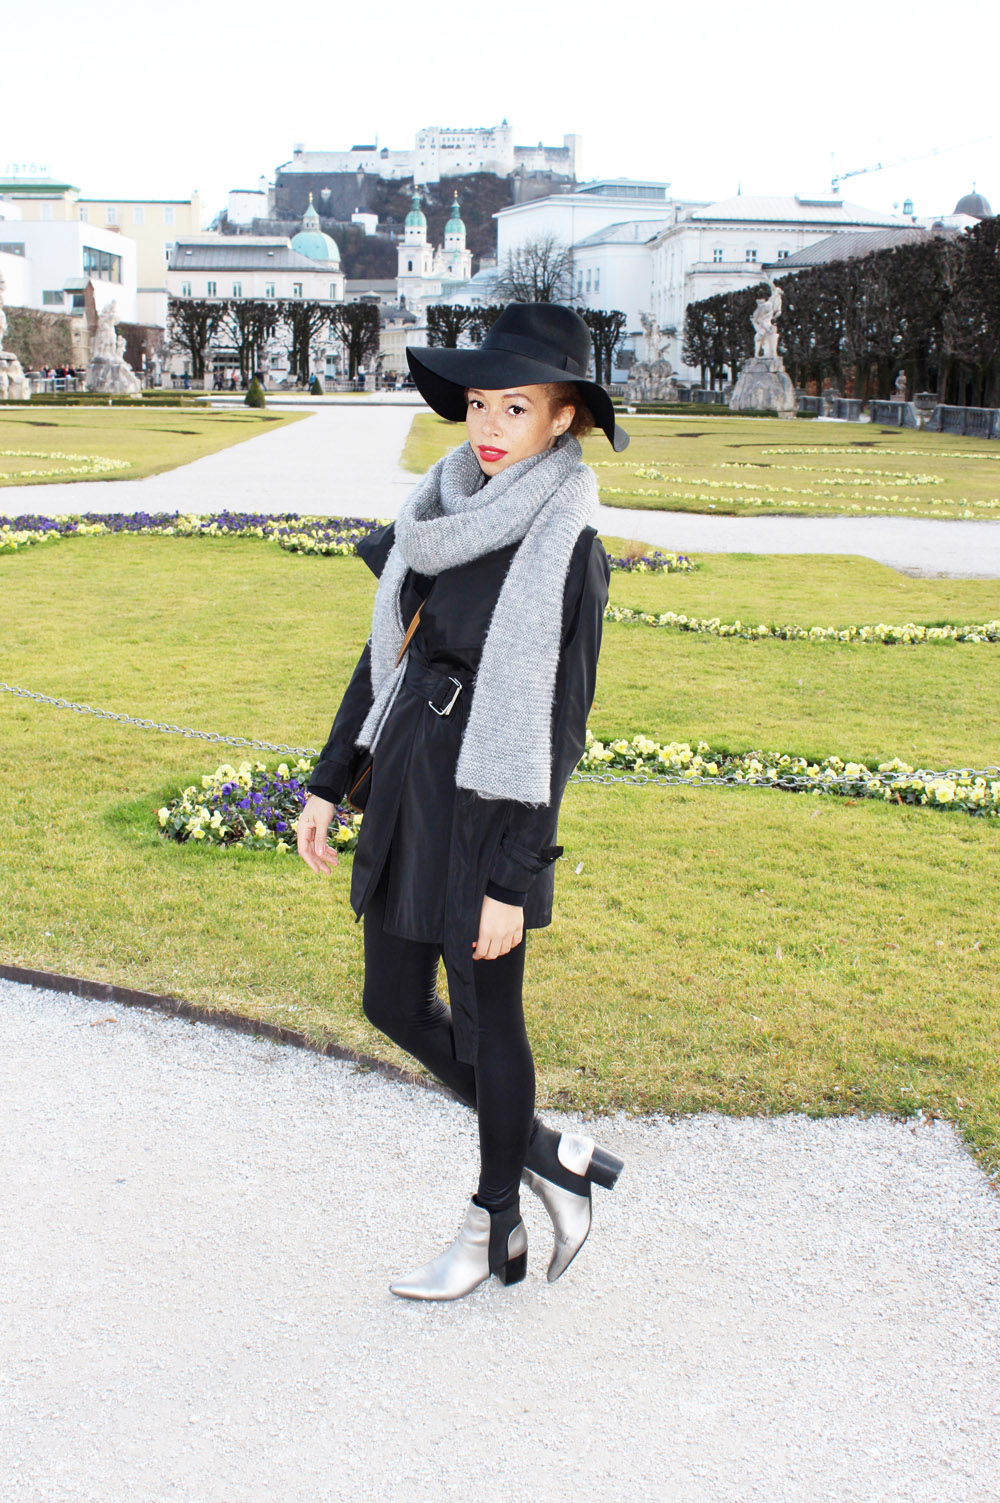 fatimayarie-salzburg-black-hat-lancel-bag-chelseaboots-img_1940